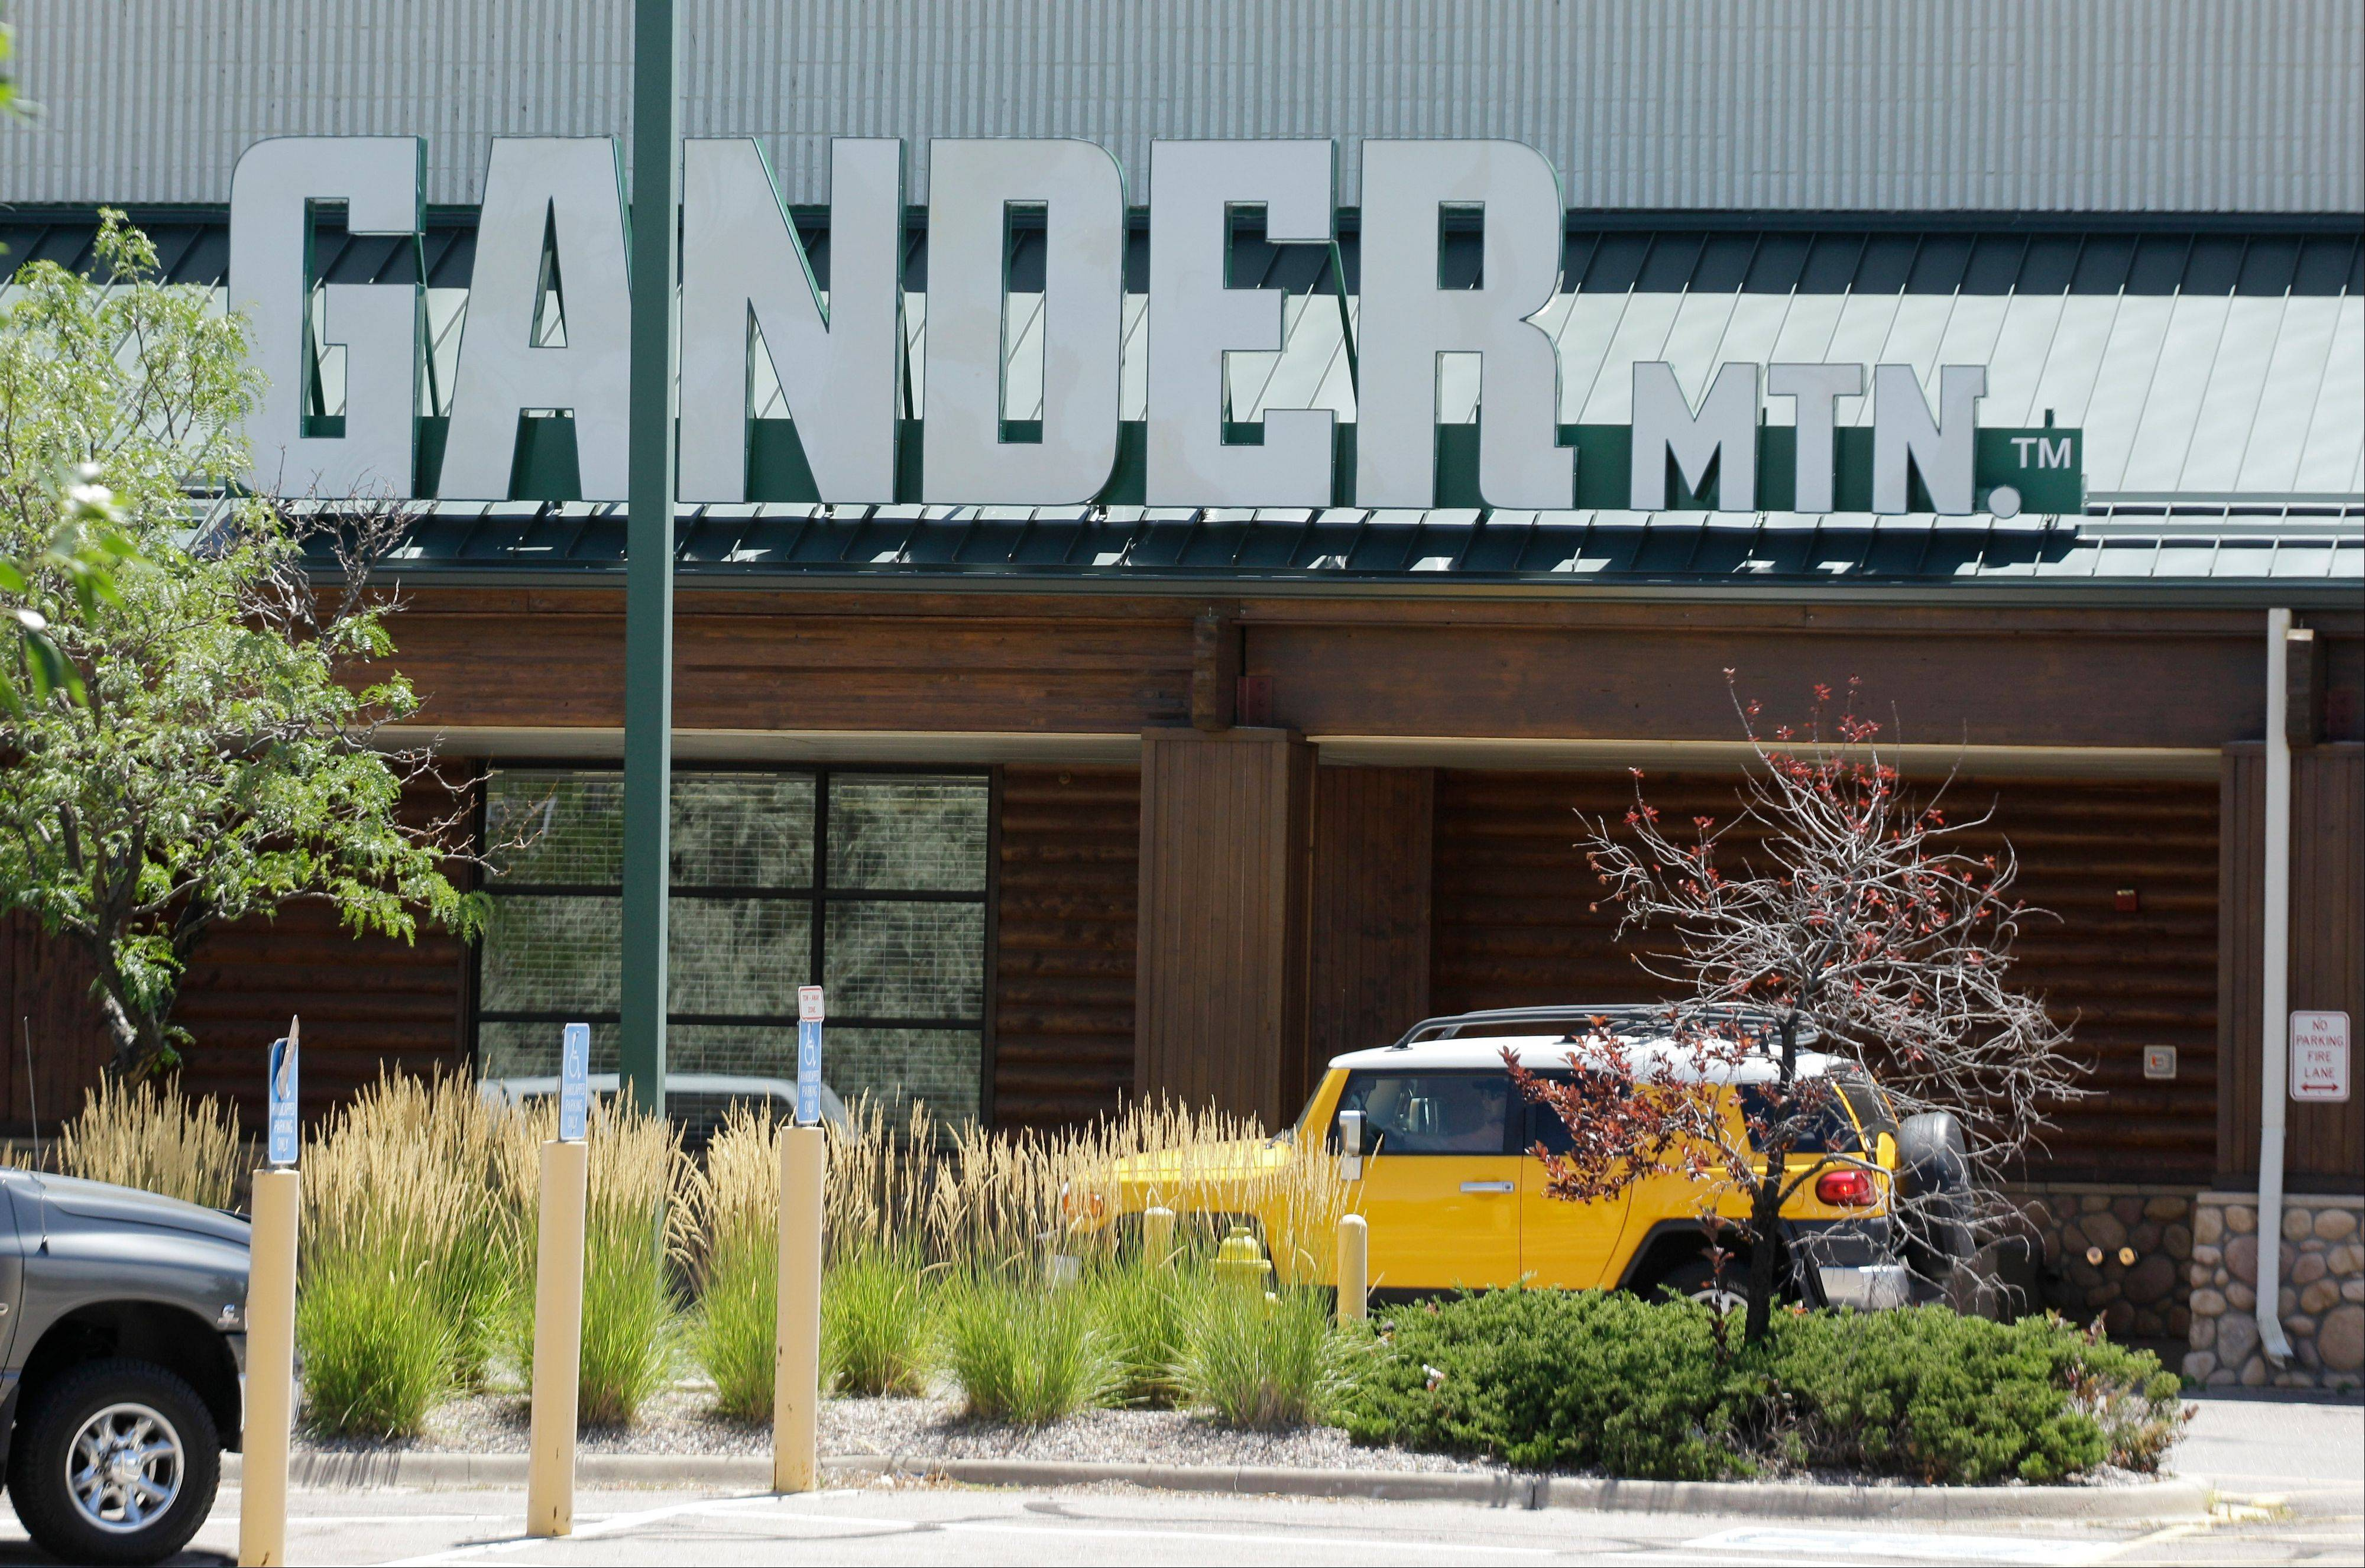 The Gander Mountain store in Aurora, Colo., is where the gunman in Friday�s movie theater shooting allegedly purchased one of his weapons.